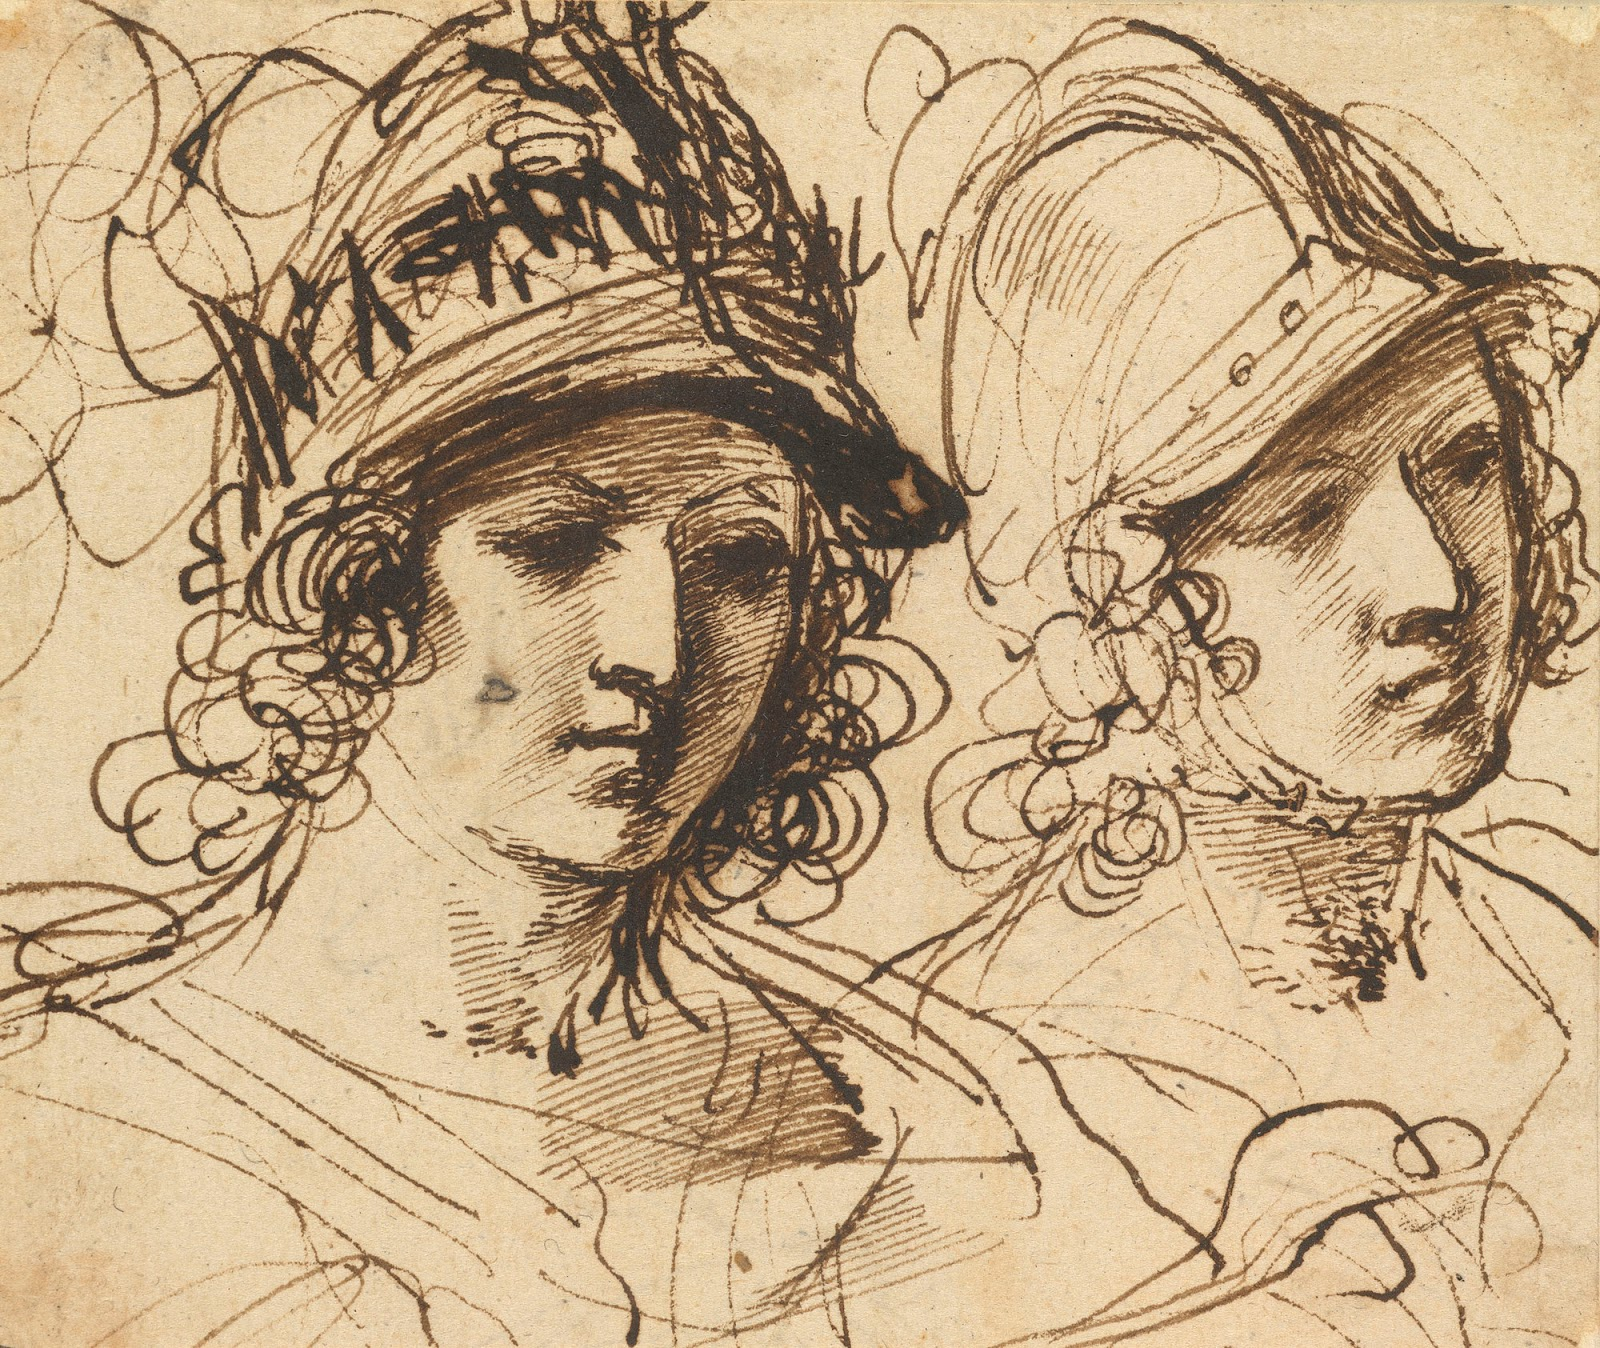 Guercino alexander the great two studies ca 1620 40 drawing royal collection windsor